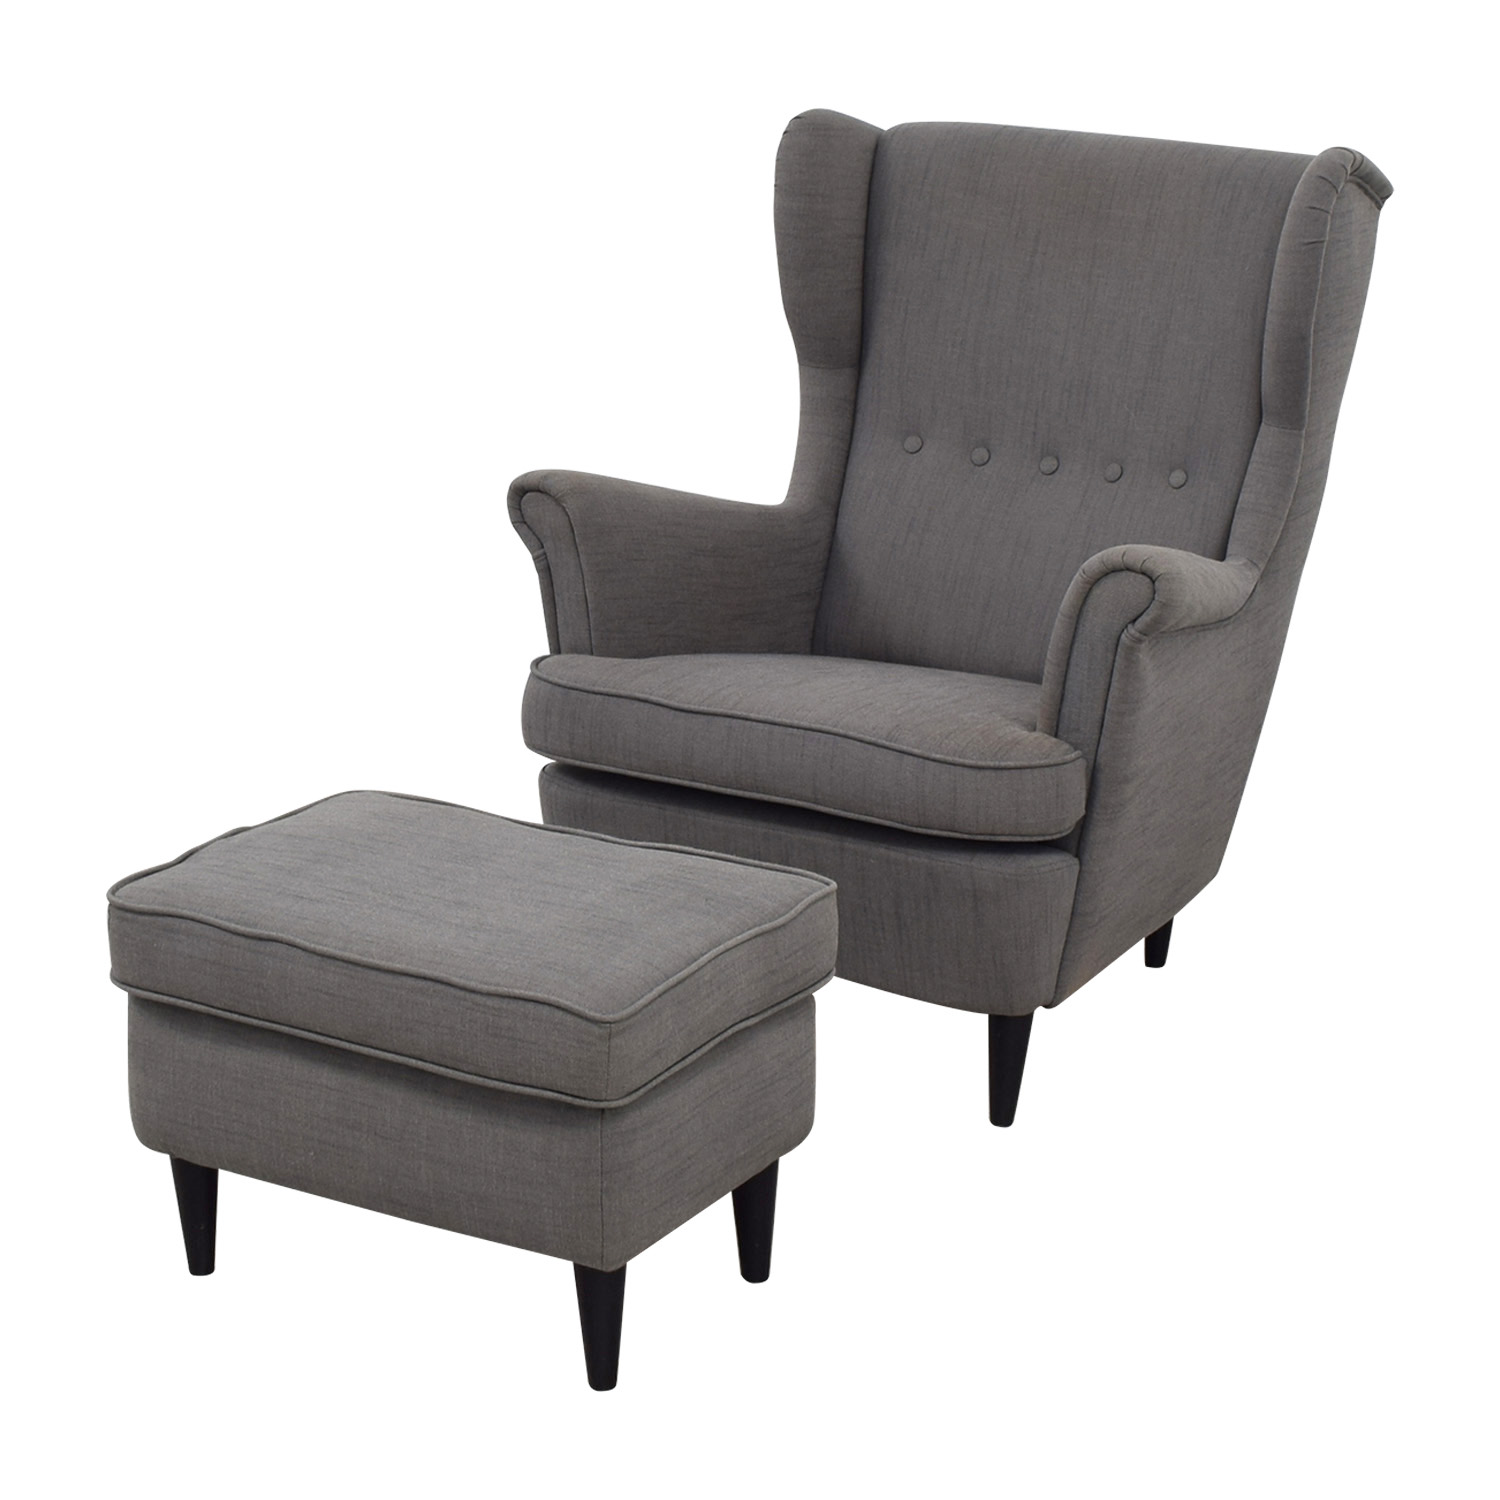 62 off ikea ikea grey wing chair and ottoman chairs. Black Bedroom Furniture Sets. Home Design Ideas